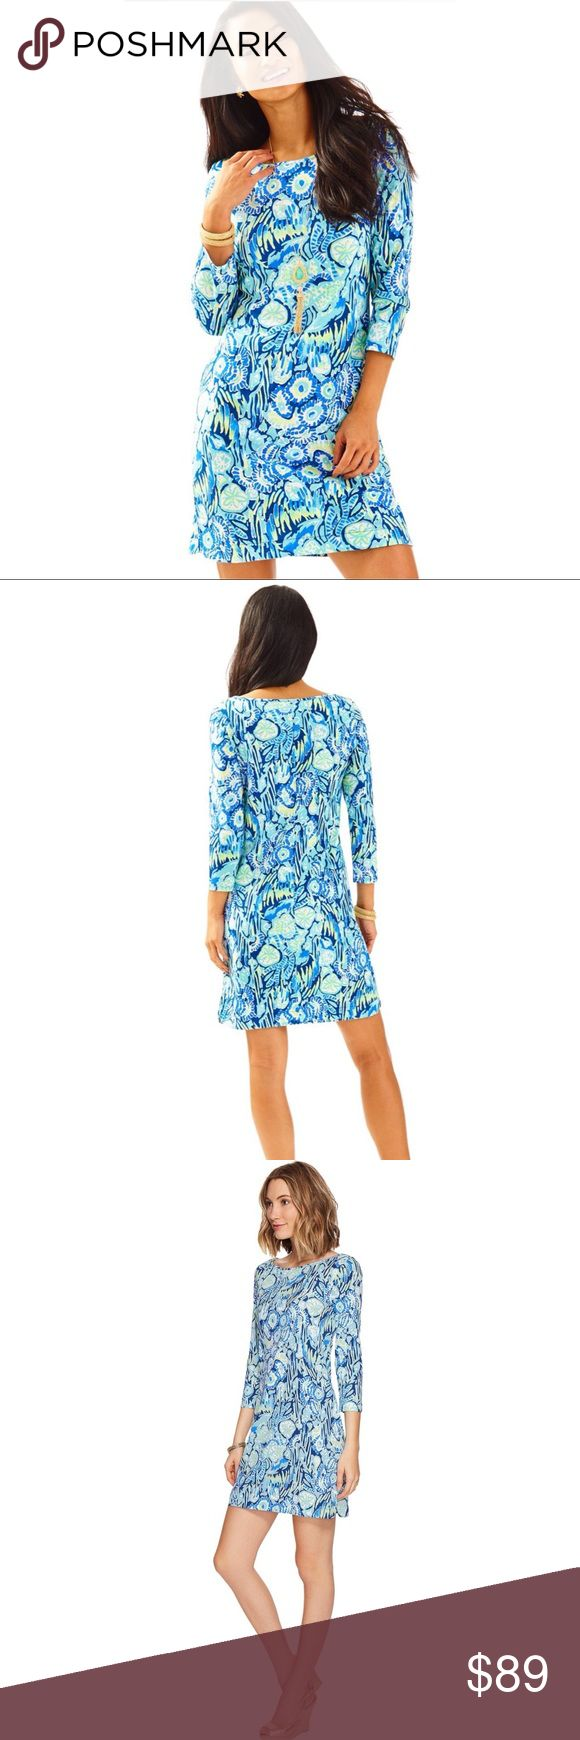 """NWOT Lilly Pulitzer Marlowe Sunset Swim Printed cotton dresses are always a good idea. But we love bright printed dresses even more. The Lilly Pulitzer Marlowe Dress in Indigo Sunset Swim is just that. You'll love this when jetting to Palm Beach for the weekend.  Printed 3/4 Length Sleeve T-Shirt Dress With Boatneck And Curved Side Slits At Hem. 36"""" From Top Of Shoulder To Hem. Length: Above The Knee. Pima Cotton Jersey - Printed (100% Pima Cotton). Machine Wash Cold. Separately. Delicate…"""